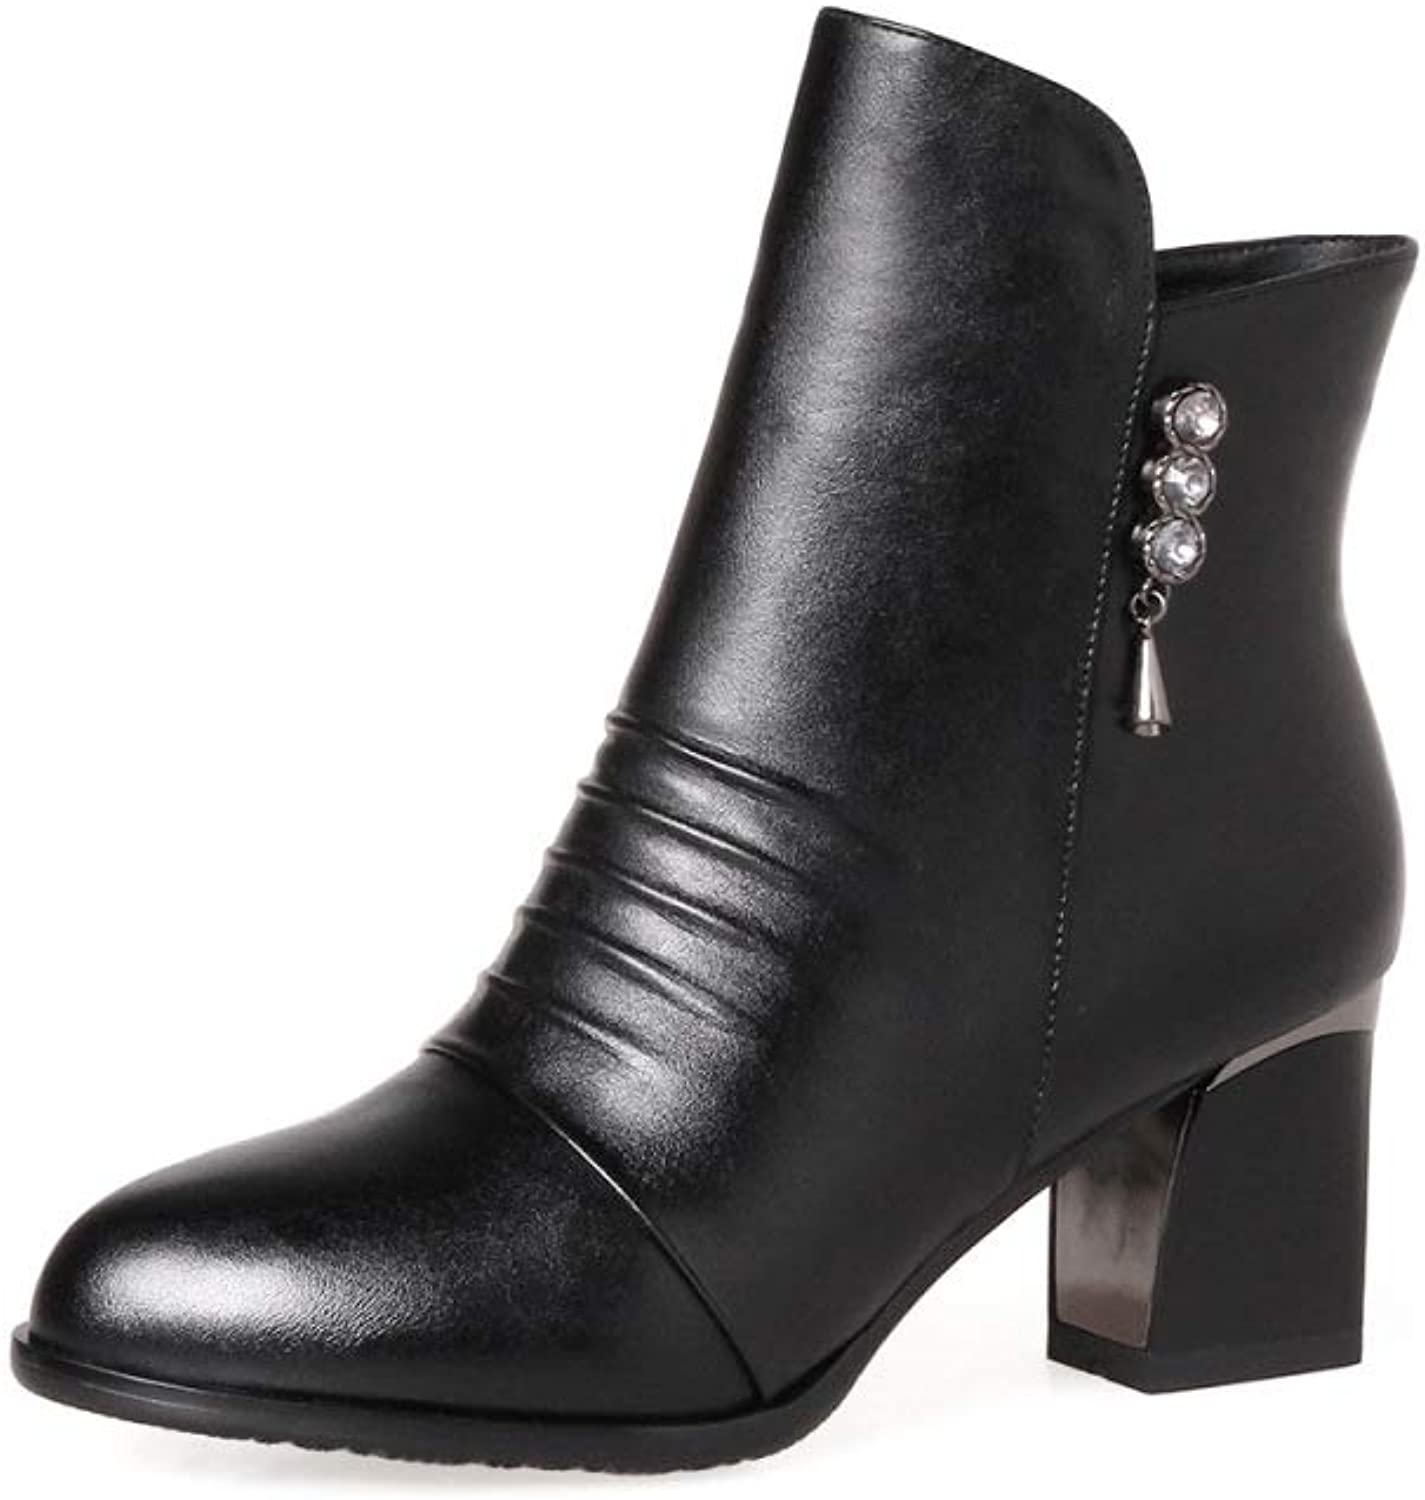 Women Leather Martin Boots 2018 Winter Fashion High Heel Ankle Boots Size 33-43 Short Boots,Black,41